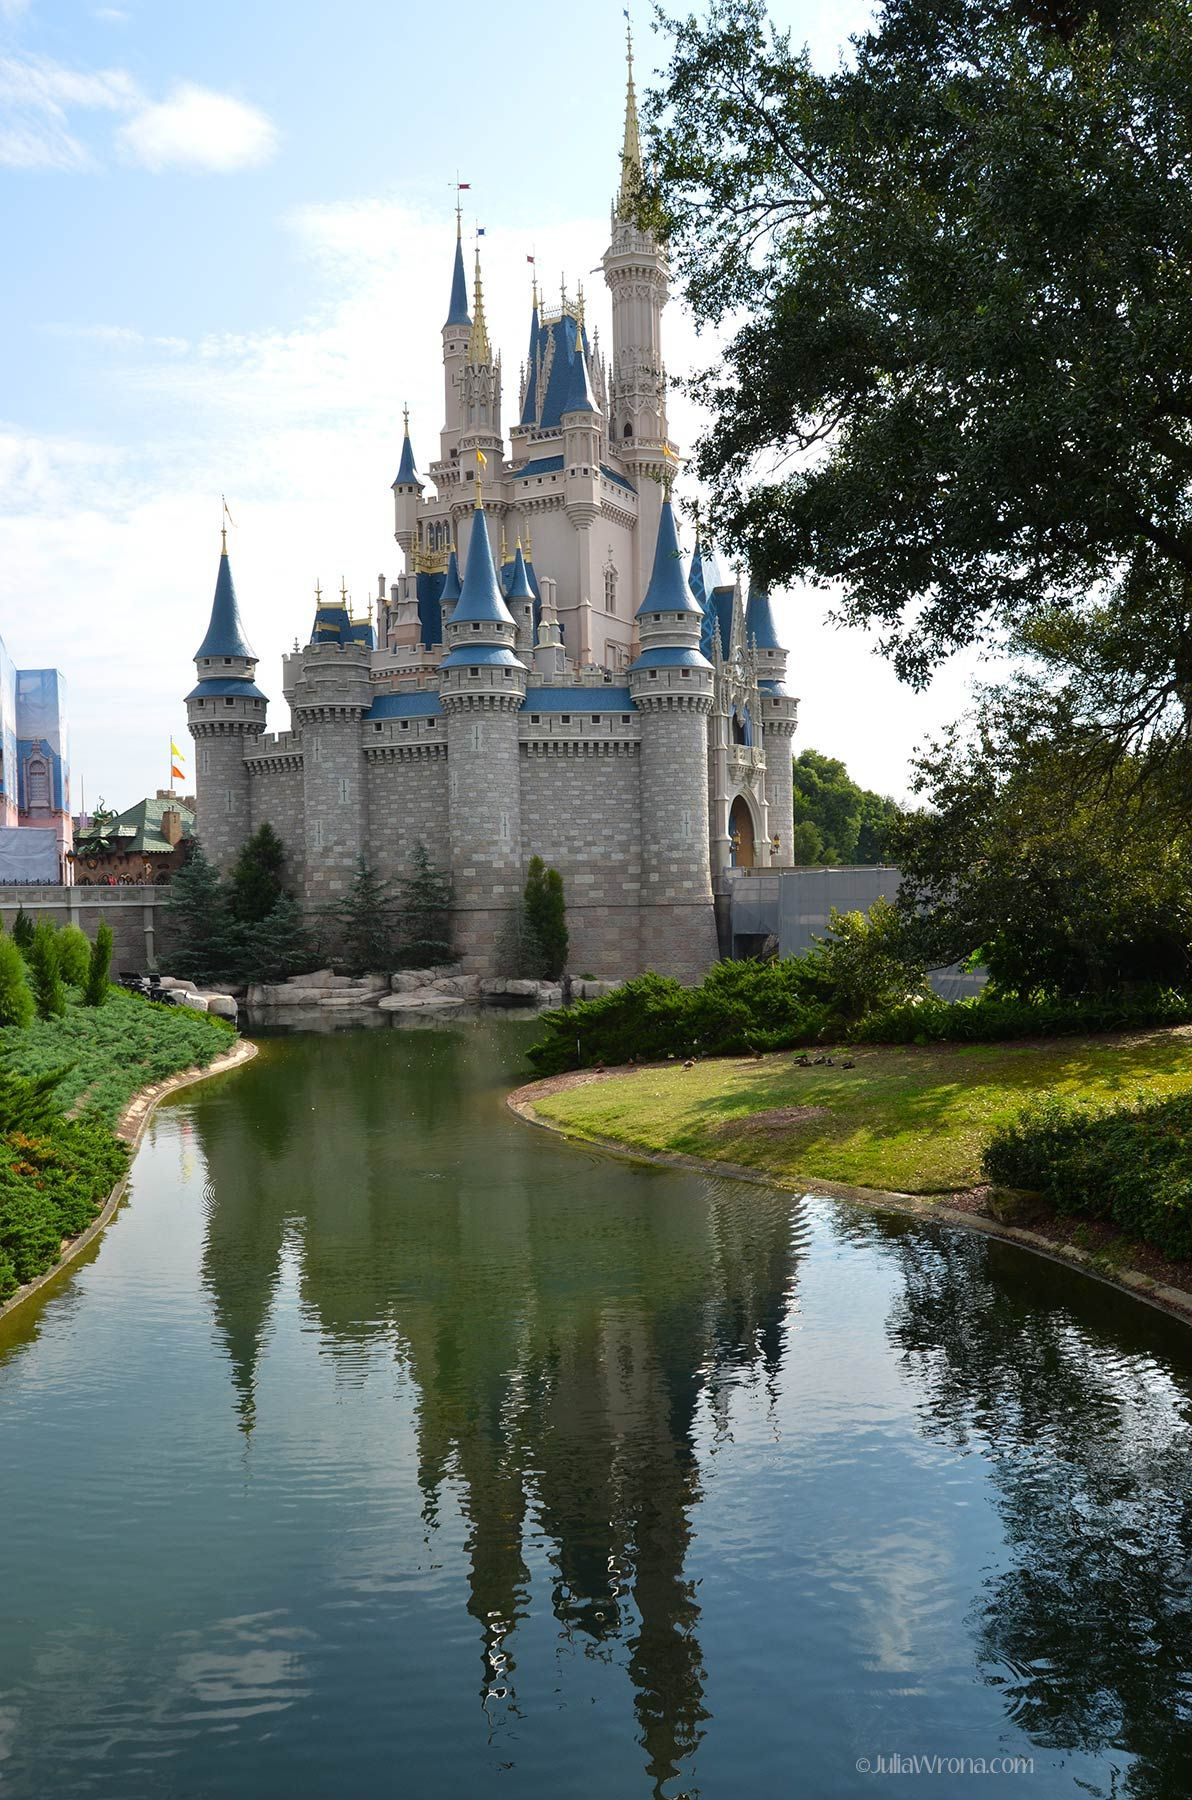 JKW_9876eweb Cinderella Castle Reflection.jpg